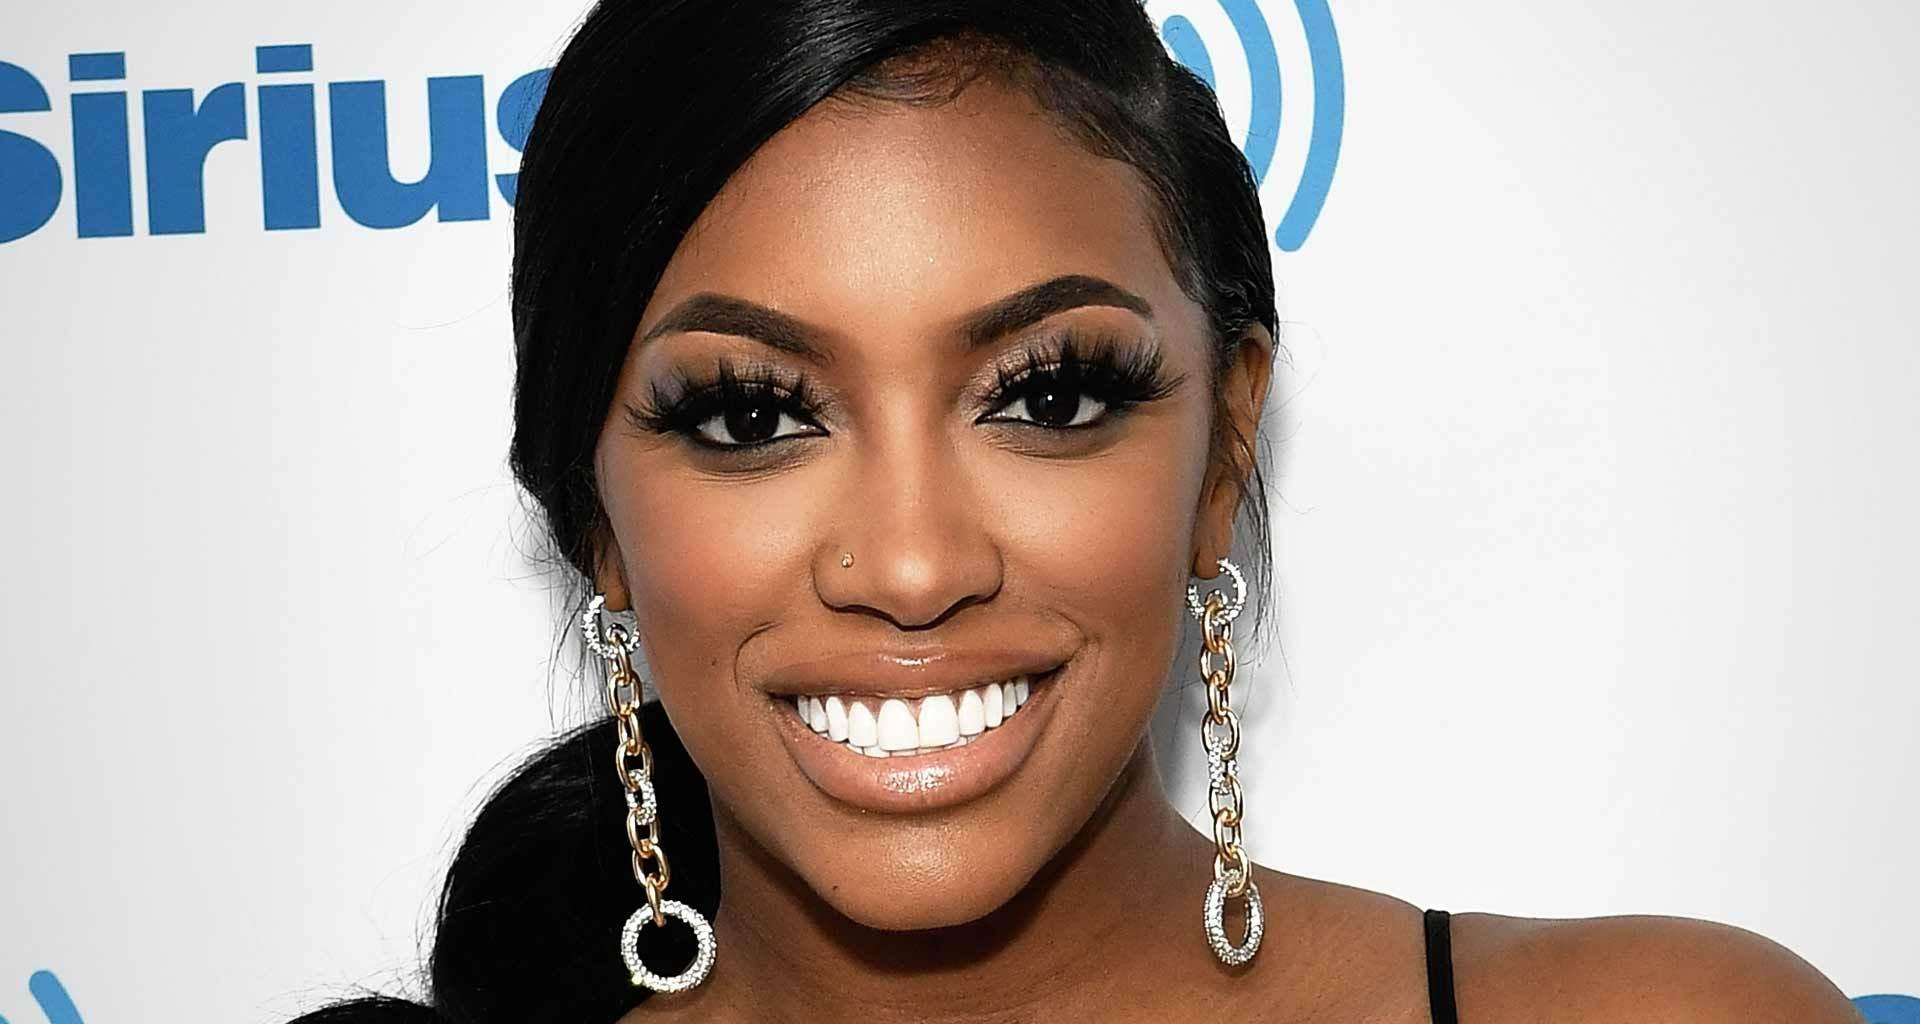 Porsha Williams Shares Jaw-Dropping Pics From Her Pool Day With Baby PJ - Some Fans Have A Theory About What's Going On With Dennis